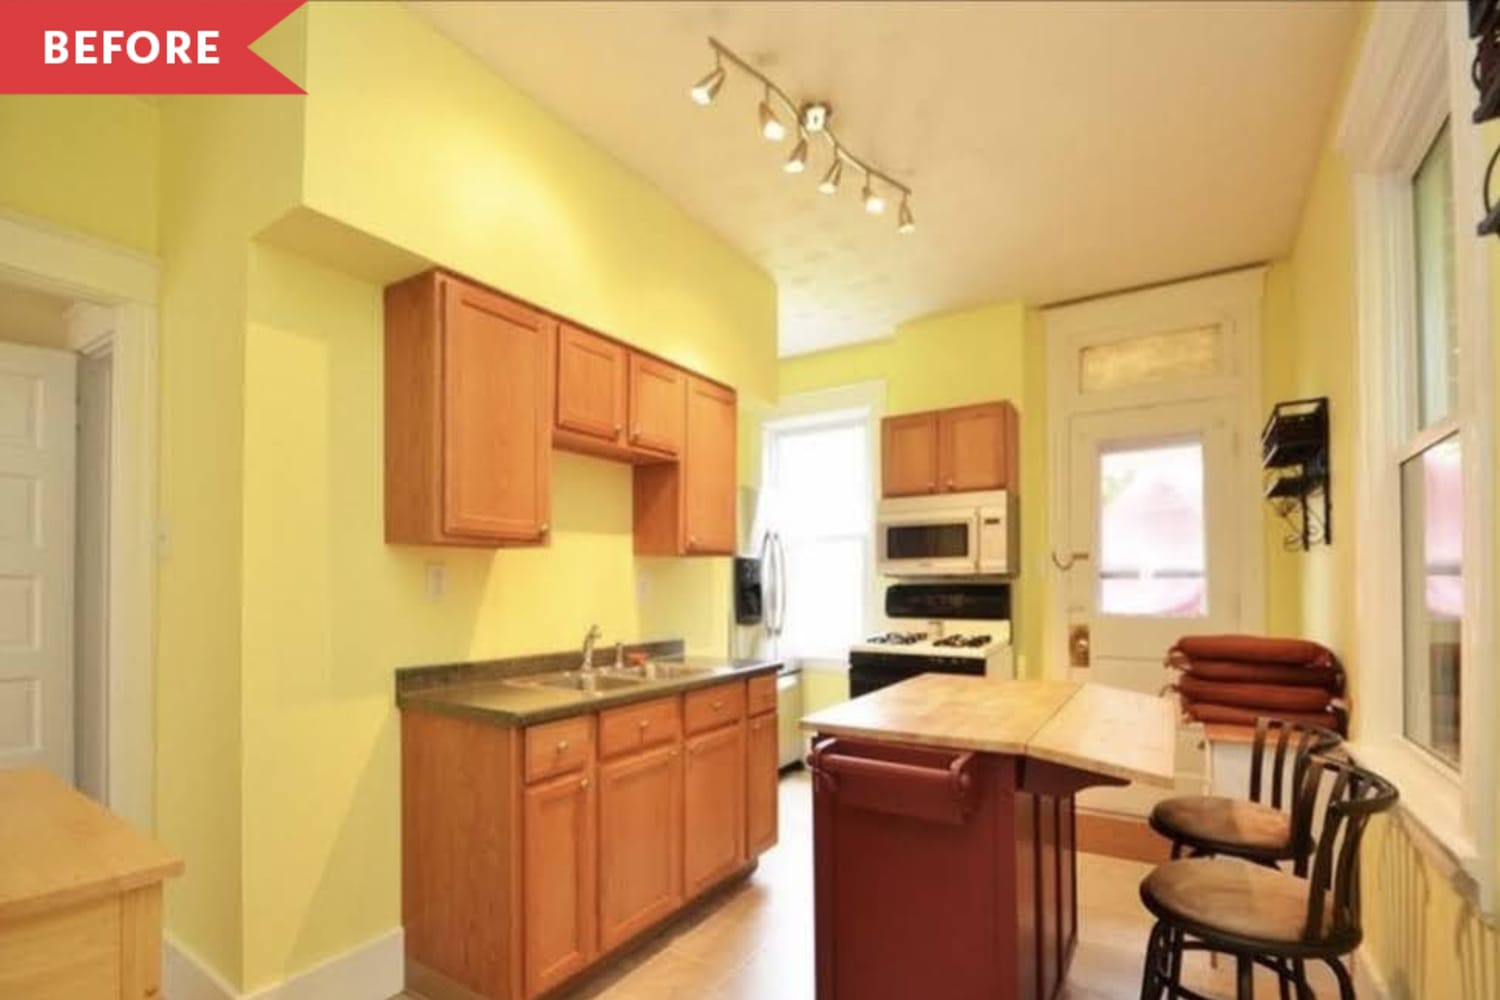 Before and After: A Two Week, $900 Redo Gives a Dated Kitchen a New Life